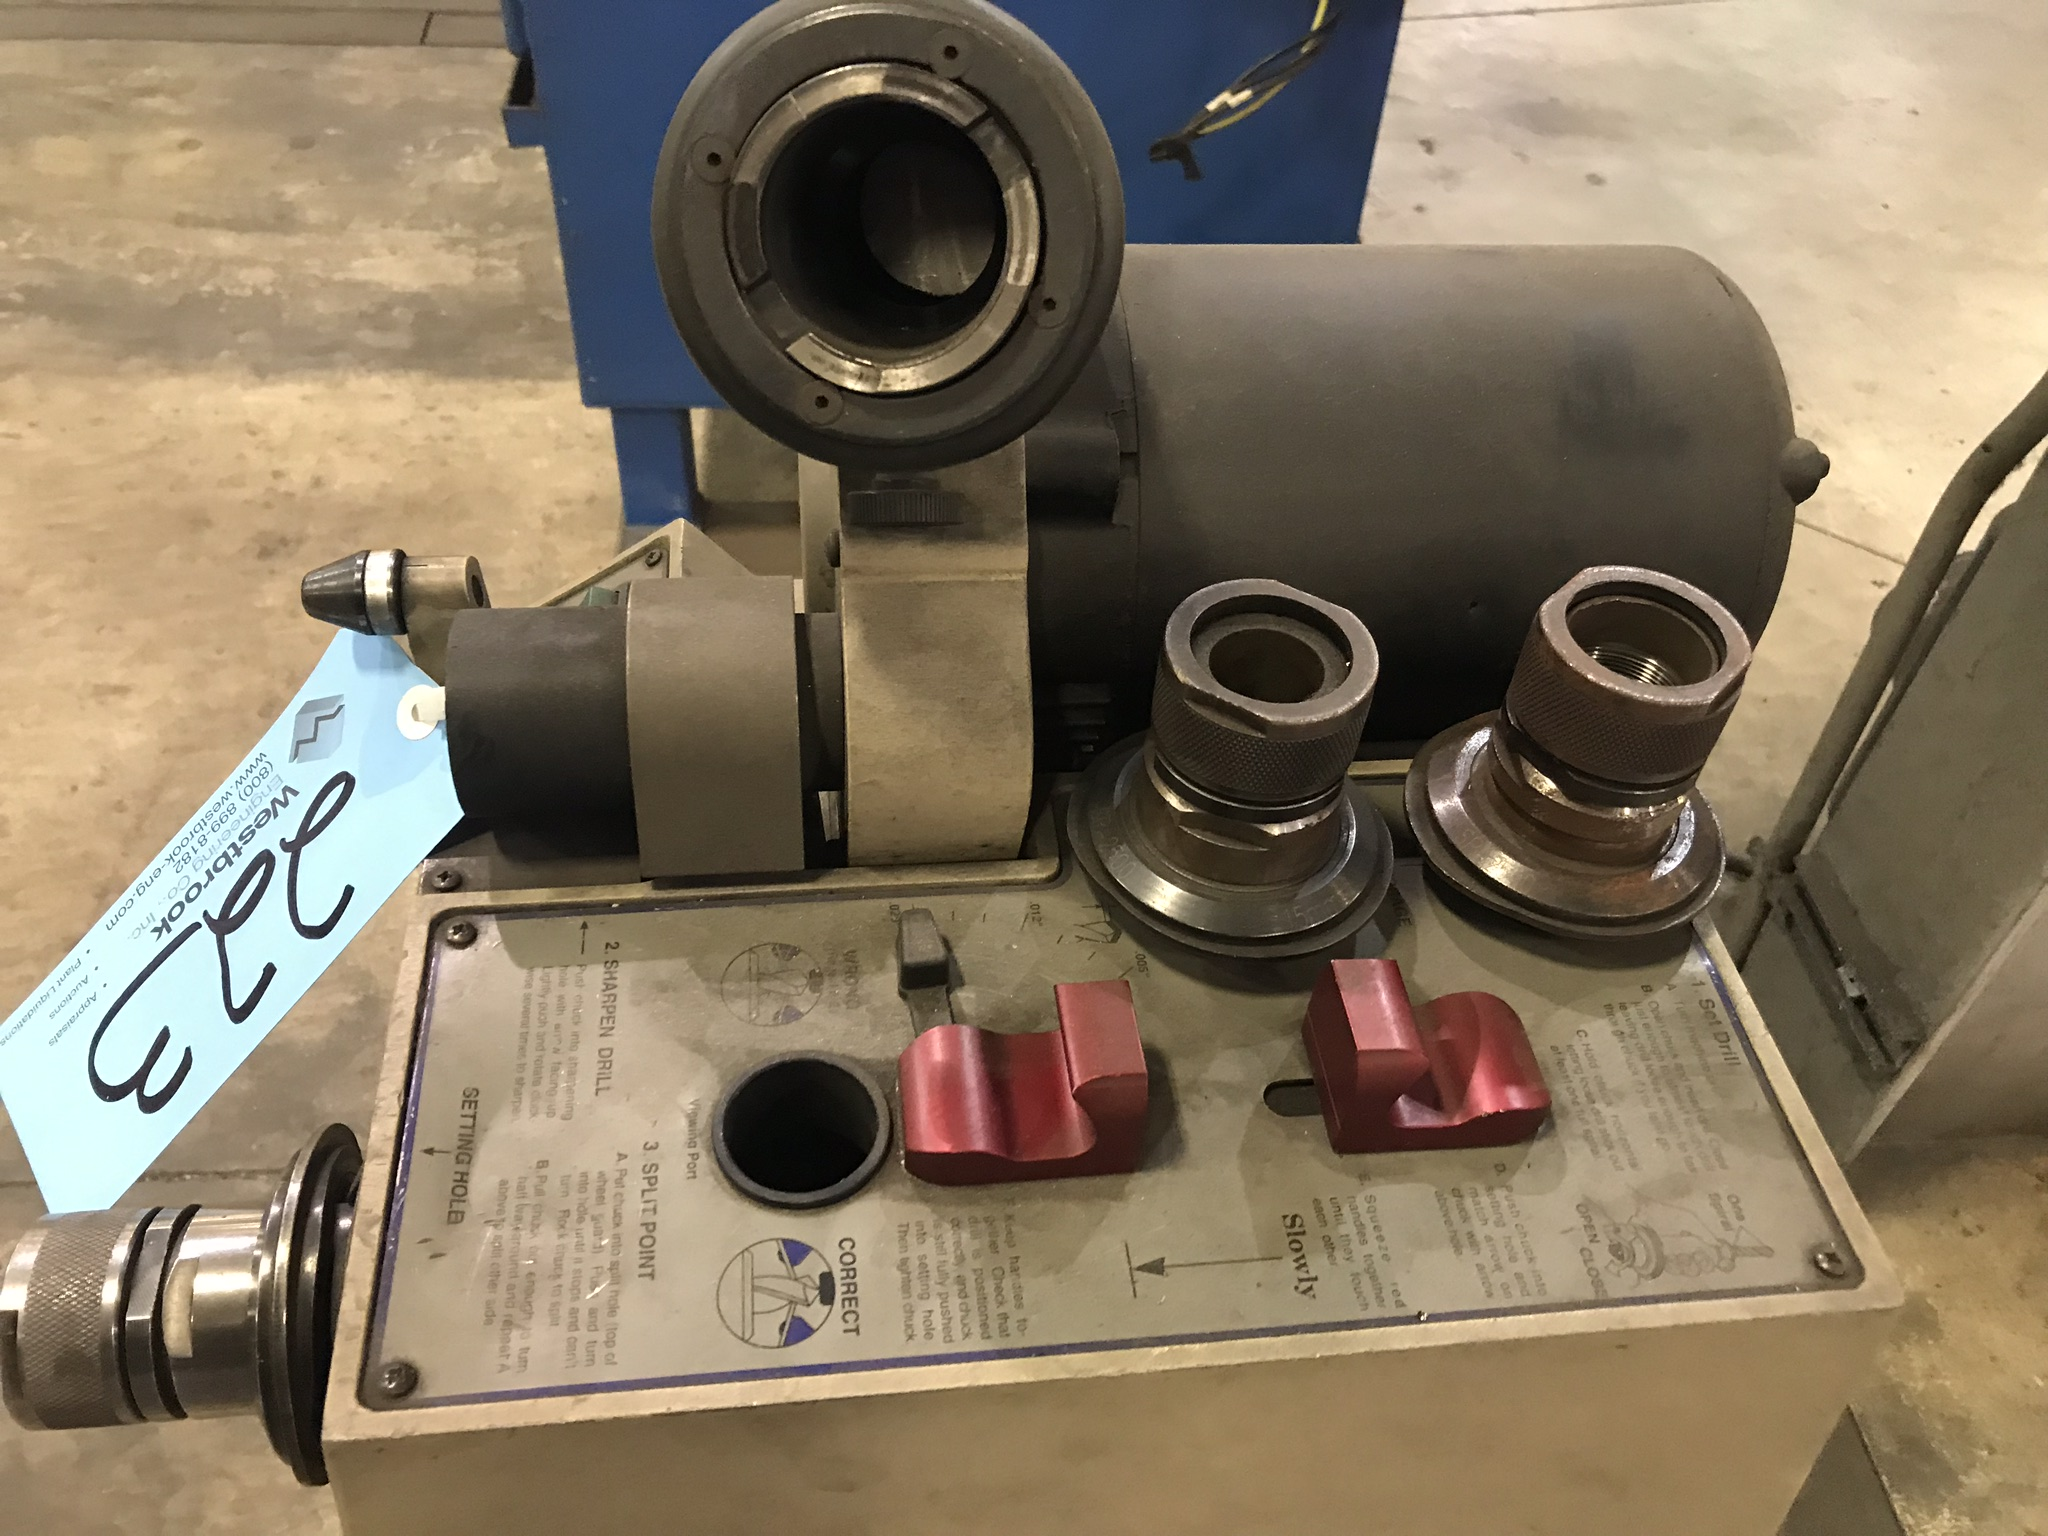 Darex Model SP2500 Ultra Precision Drill Sharpener, S/n N/a, with Stand - Image 2 of 2